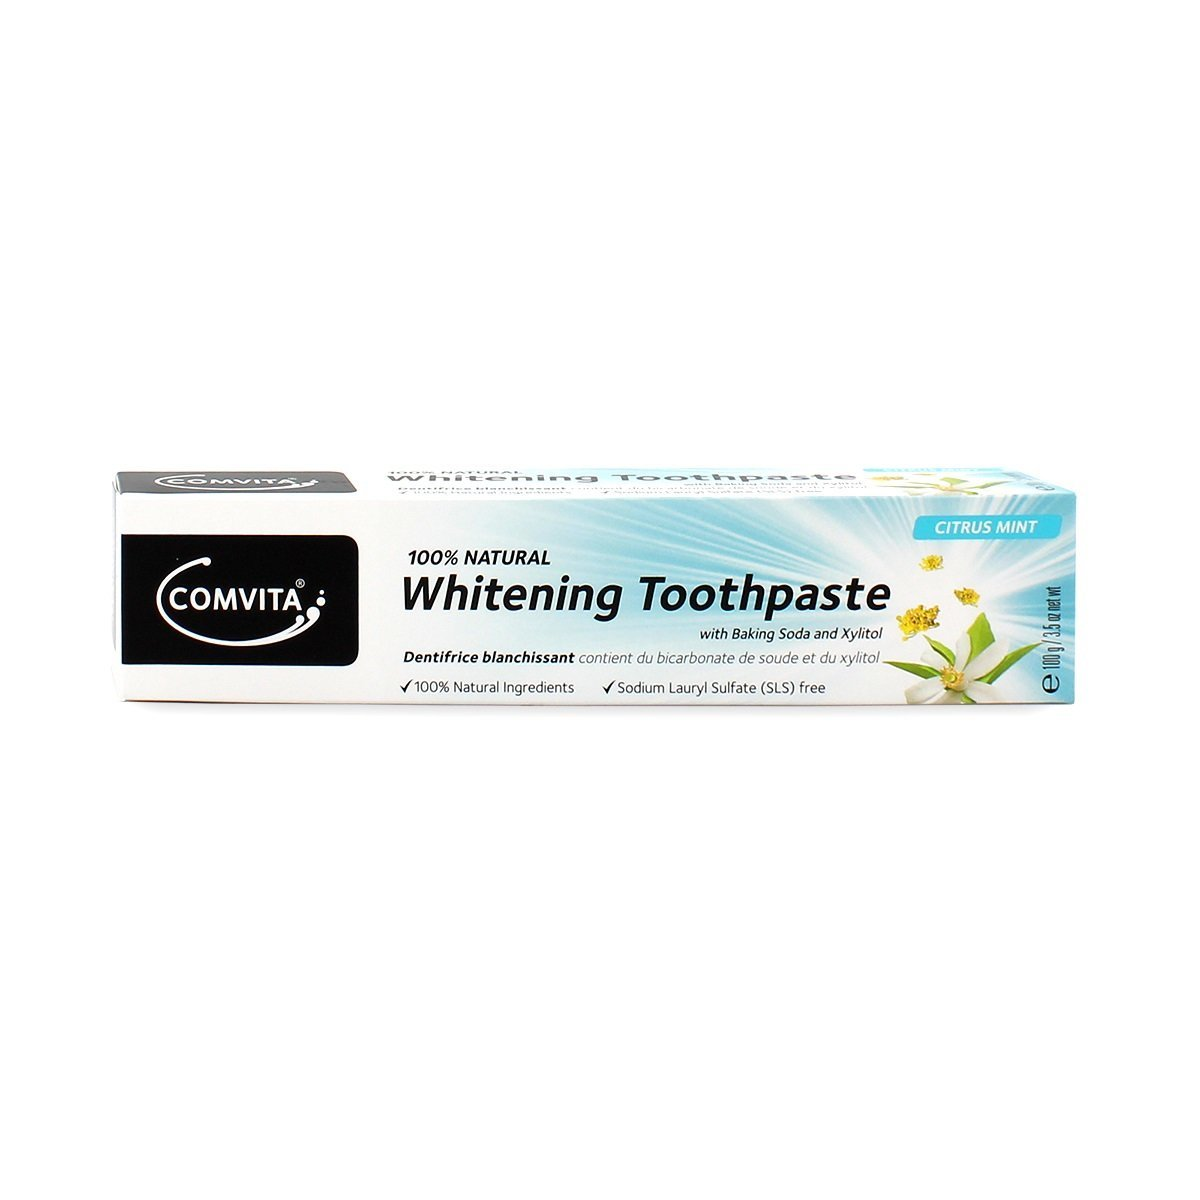 Natural Whitening Toothpaste